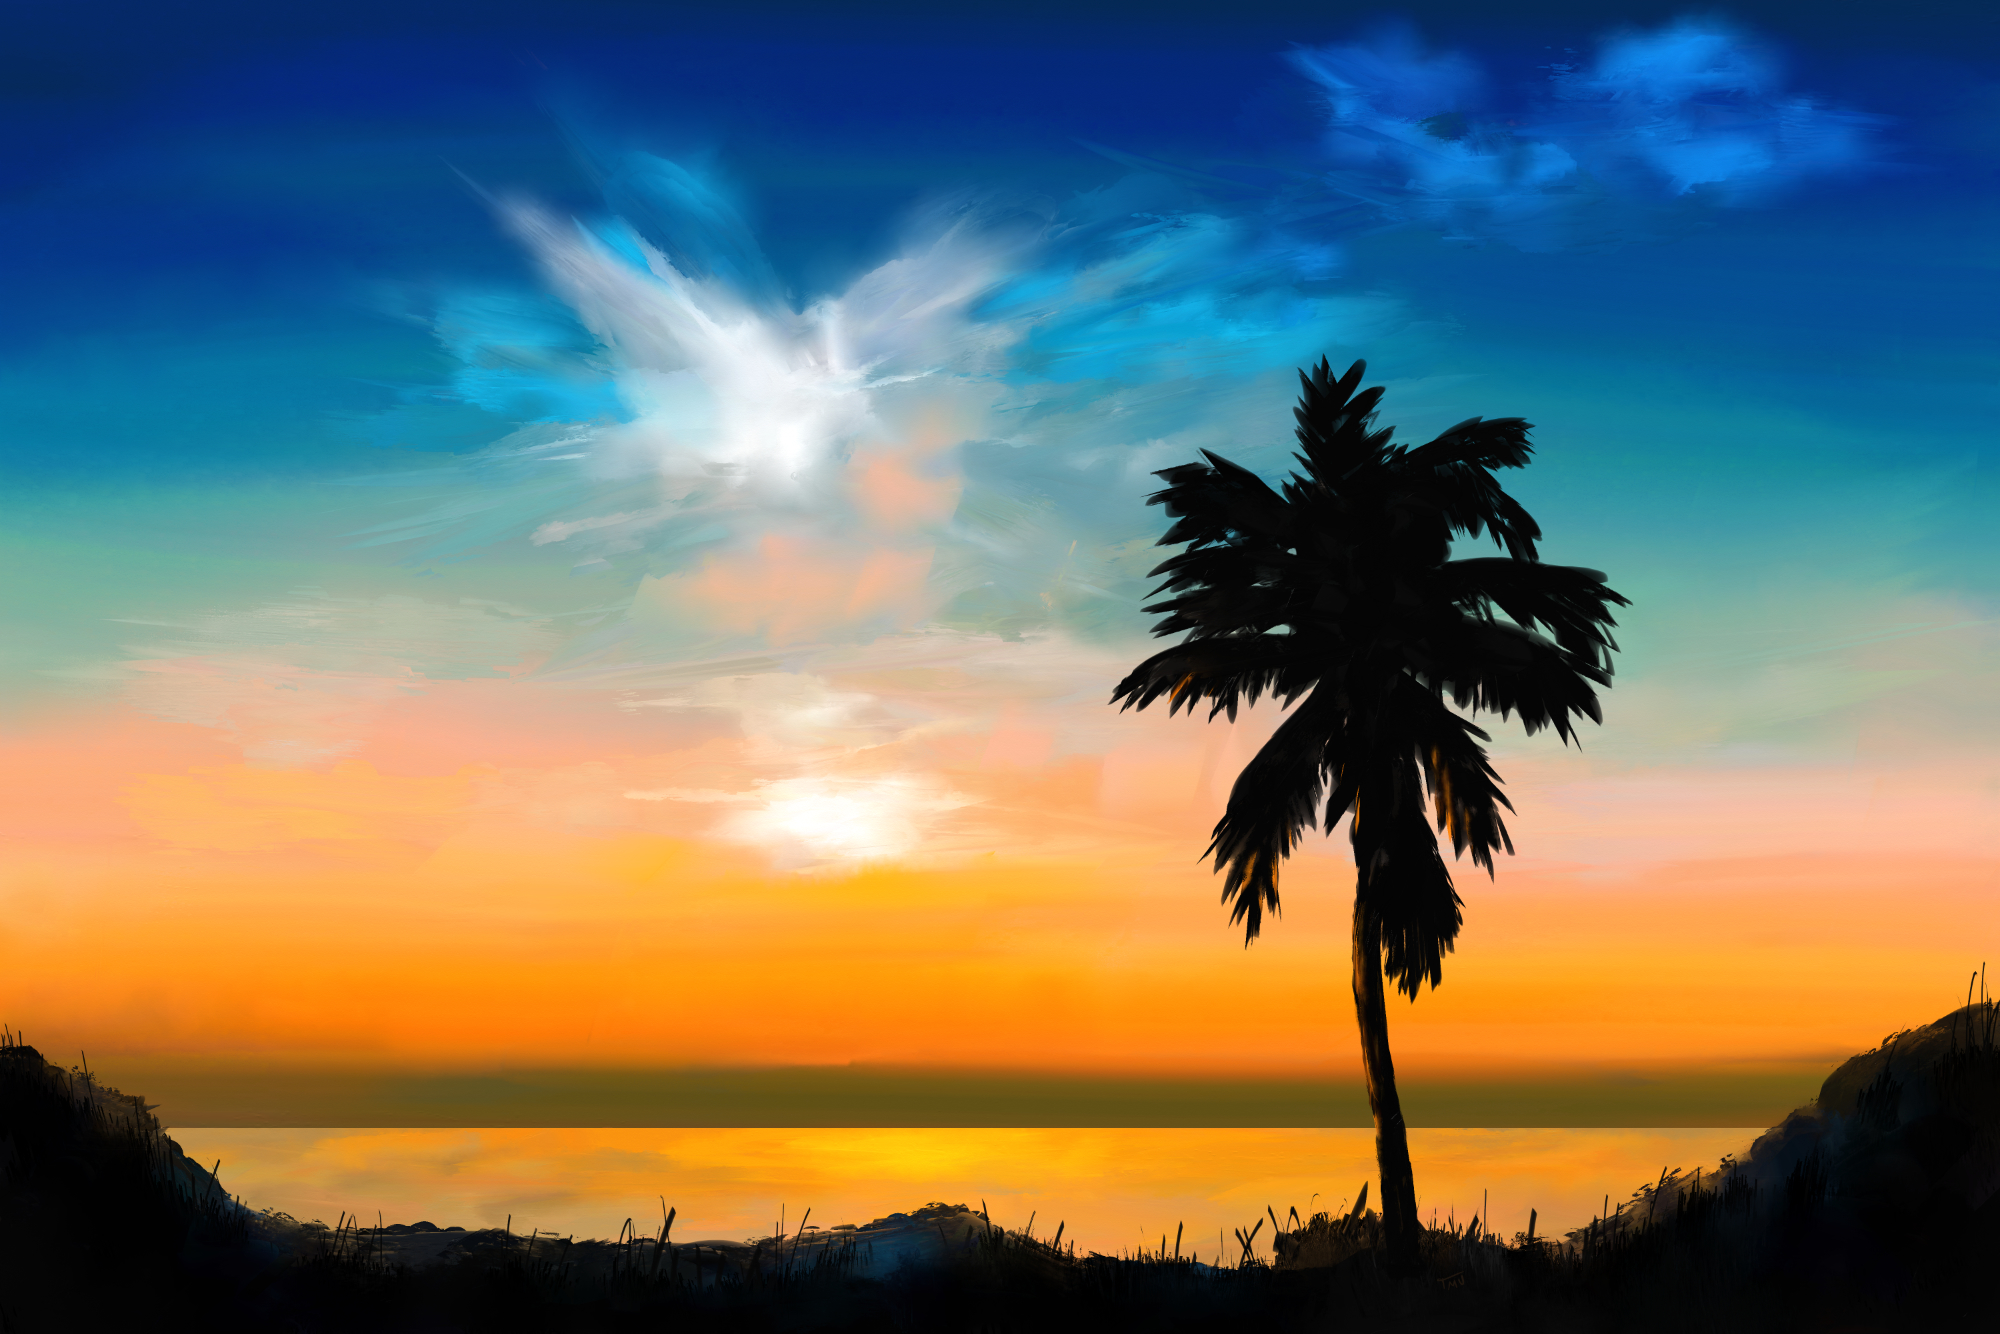 Digital acrylic painting of a Sunset with Palm Tree